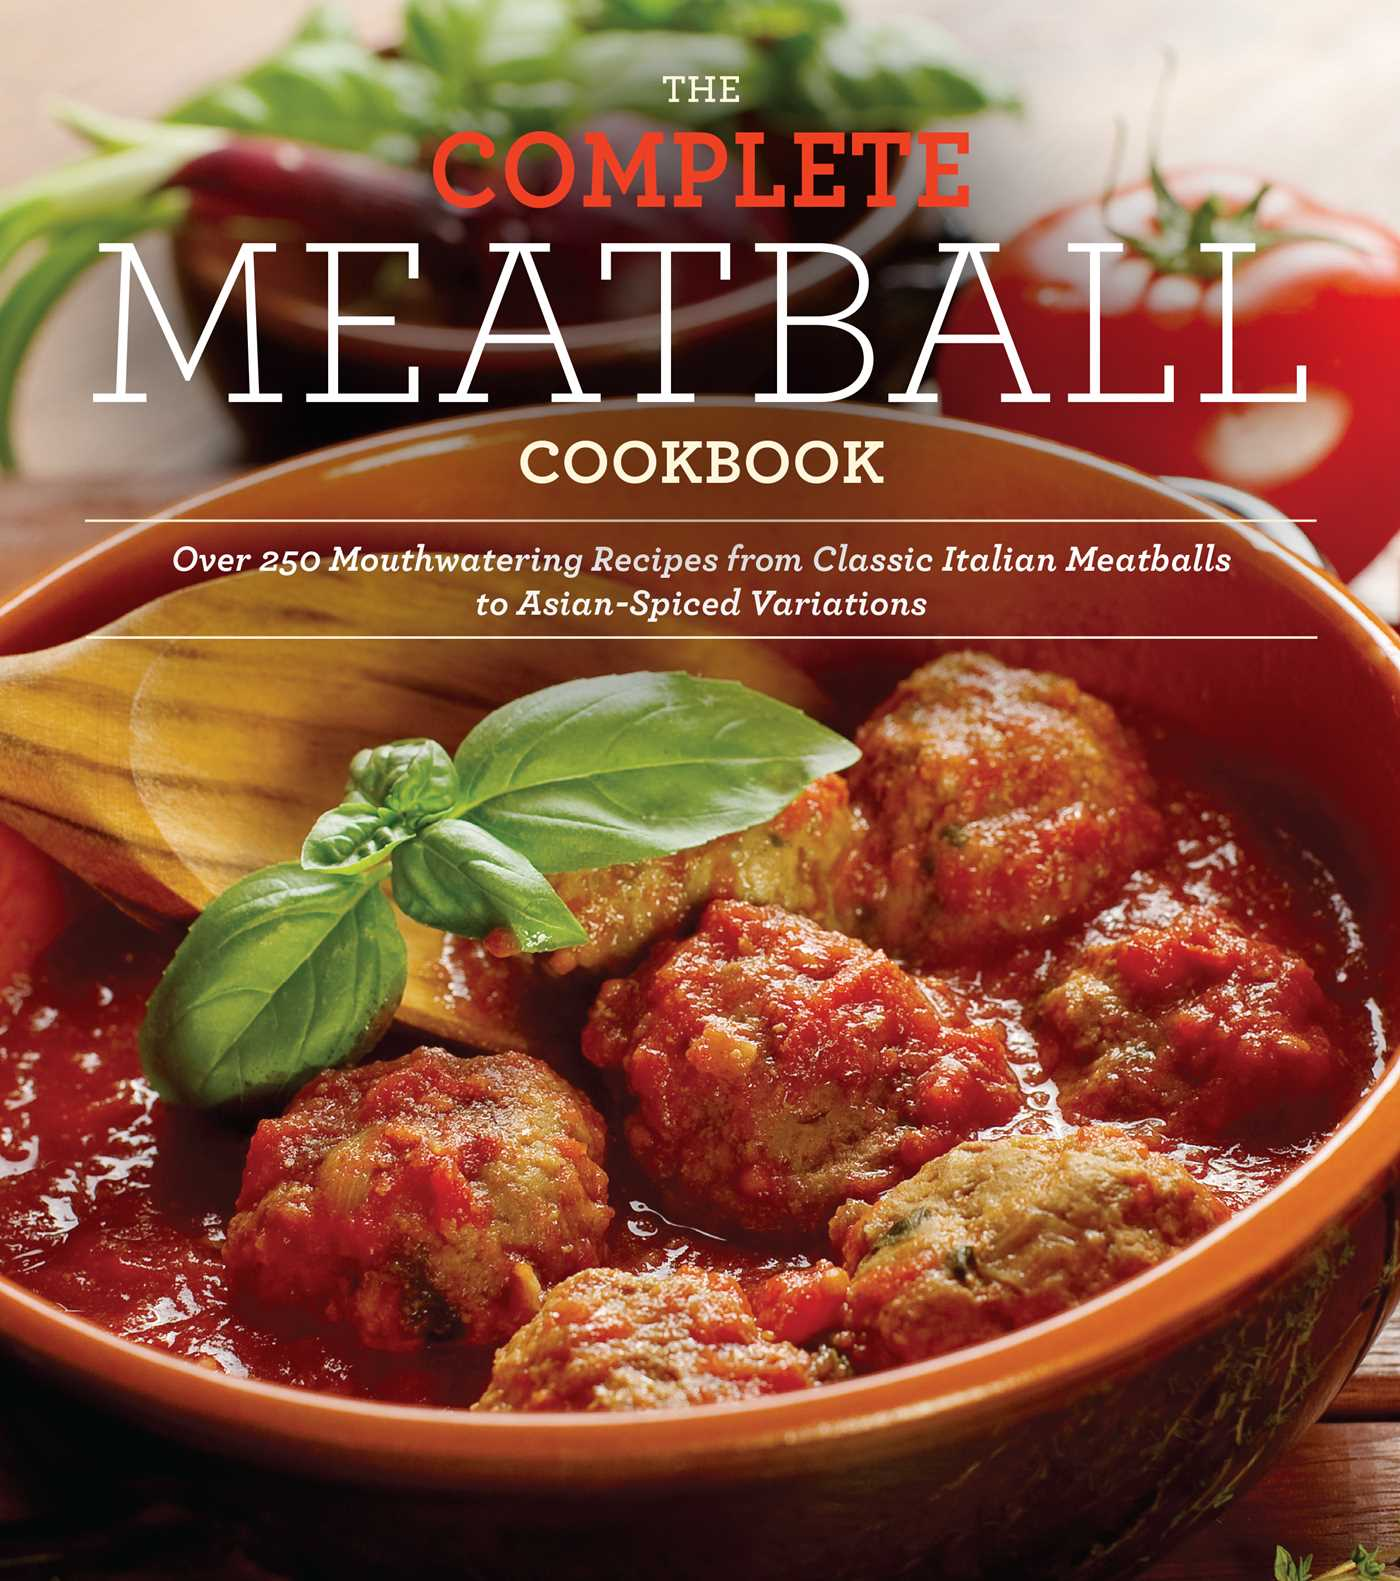 Complete-meatball-cookbook-9781604334722_hr